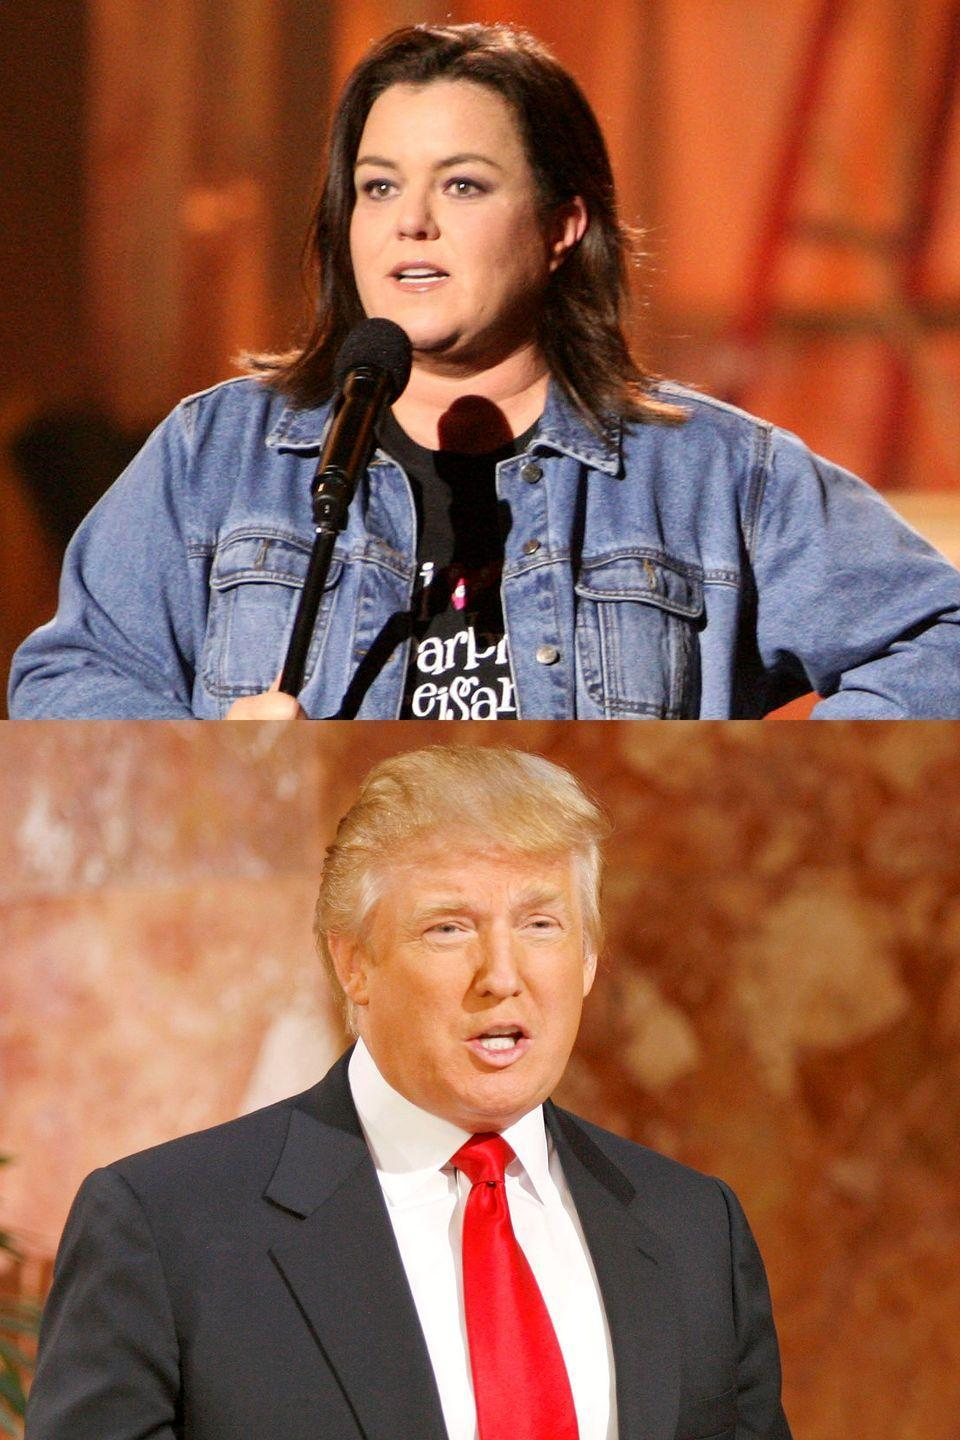 "<p>Once upon a time, Trump and O'Donnell were just a couple of TV hosts with loud opinions. It all started when Trump, then co-owner of the Miss USA pageant, decided not to fire Tara O'Connor, who <a href=""http://www.foxnews.com/story/2006/12/19/trump-decides-not-to-fire-miss-usa-tara-conner.html"" rel=""nofollow noopener"" target=""_blank"" data-ylk=""slk:reportedly failed"" class=""link rapid-noclick-resp"">reportedly failed</a> a drug test. O'Donnell then slammed Trump on <em>The View</em>, calling him a ""snake oil salesman,"" alleging his bankruptcy and slamming his marriages. Trump <a href=""http://people.com/celebrity/rosie-slams-trump-the-donald-fires-back/"" rel=""nofollow noopener"" target=""_blank"" data-ylk=""slk:responded"" class=""link rapid-noclick-resp"">responded</a> by calling O'Donnell a ""real loser"" and saying that he looked ""forward to taking lots of money from my nice fat little Rosie."" When Megyn Kelly, in a 2015 debate, questioned him about calling women names like ""fat pigs,"" <a href=""http://www.cnn.com/2015/08/07/politics/donald-trump-rosie-odonnell-feud/index.html"" rel=""nofollow noopener"" target=""_blank"" data-ylk=""slk:he responded"" class=""link rapid-noclick-resp"">he responded</a> with, ""Only Rosie O'Donnell.""</p>"